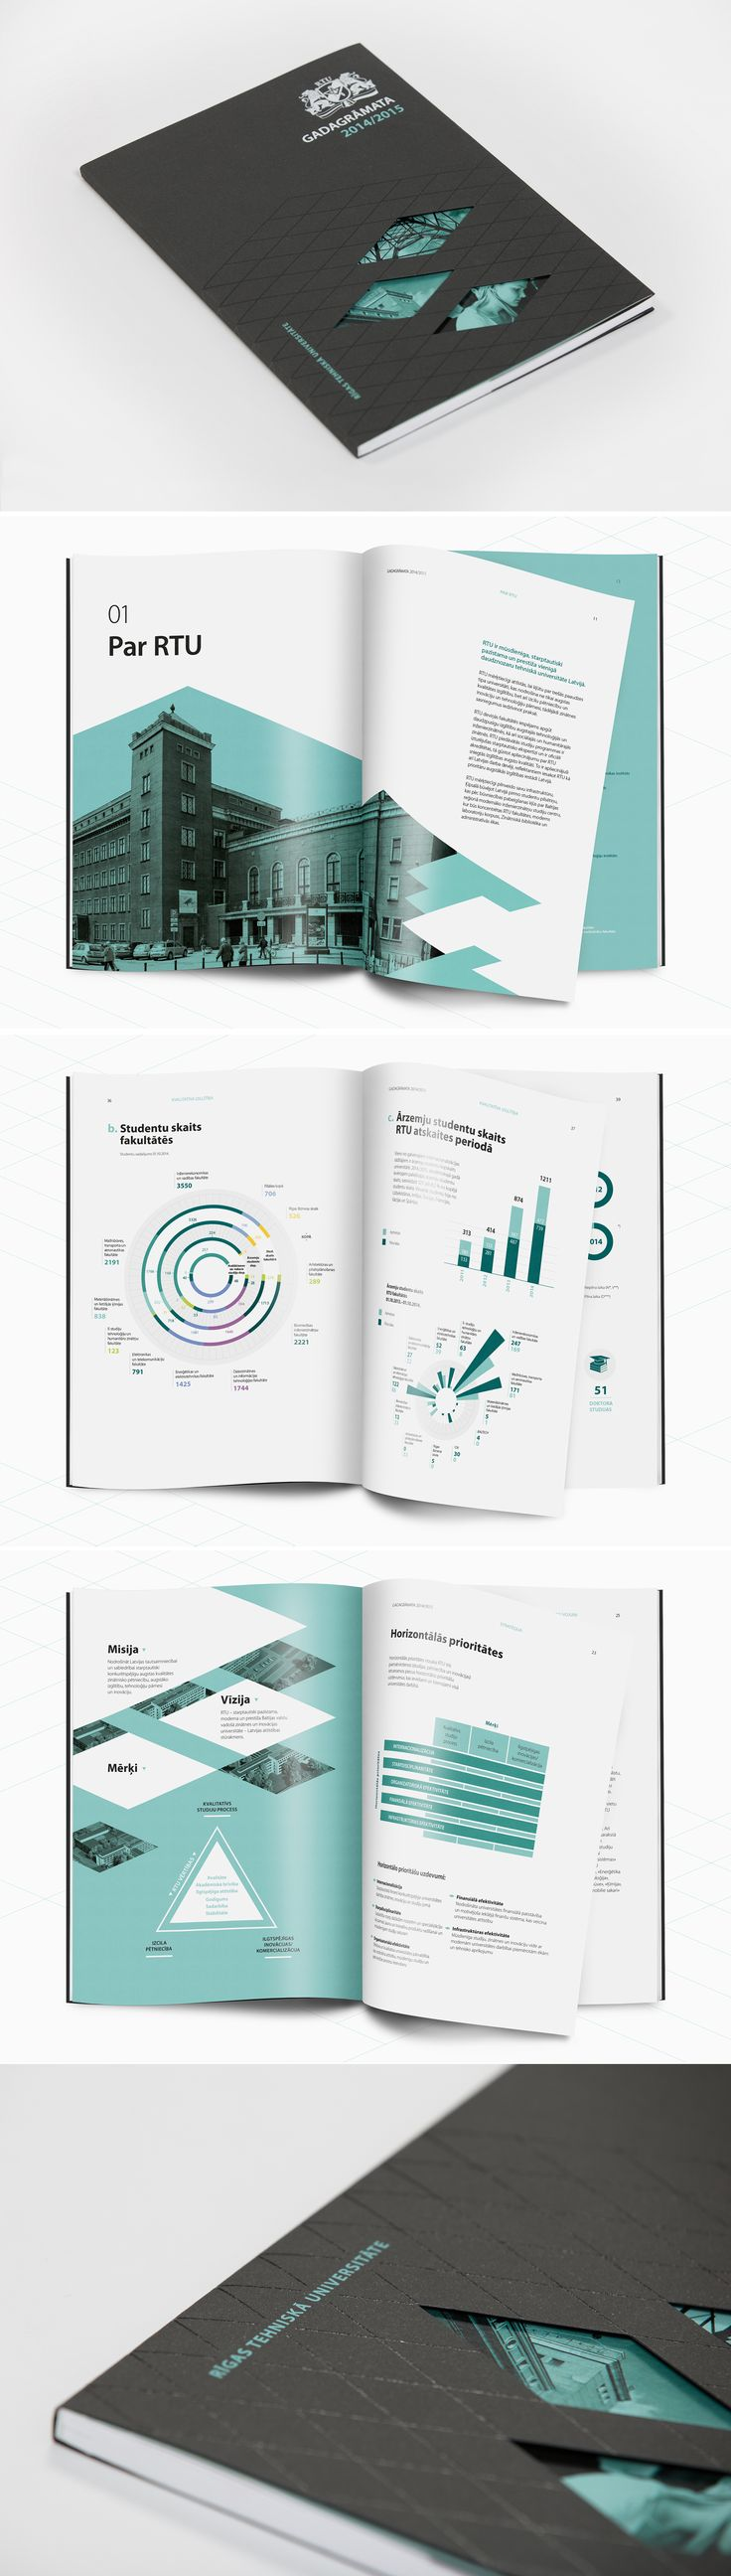 Design Of The First Annual Report For The Oldest Higher Education  Institution In Latvia U2013 Riga  Annual Report Cover Page Template